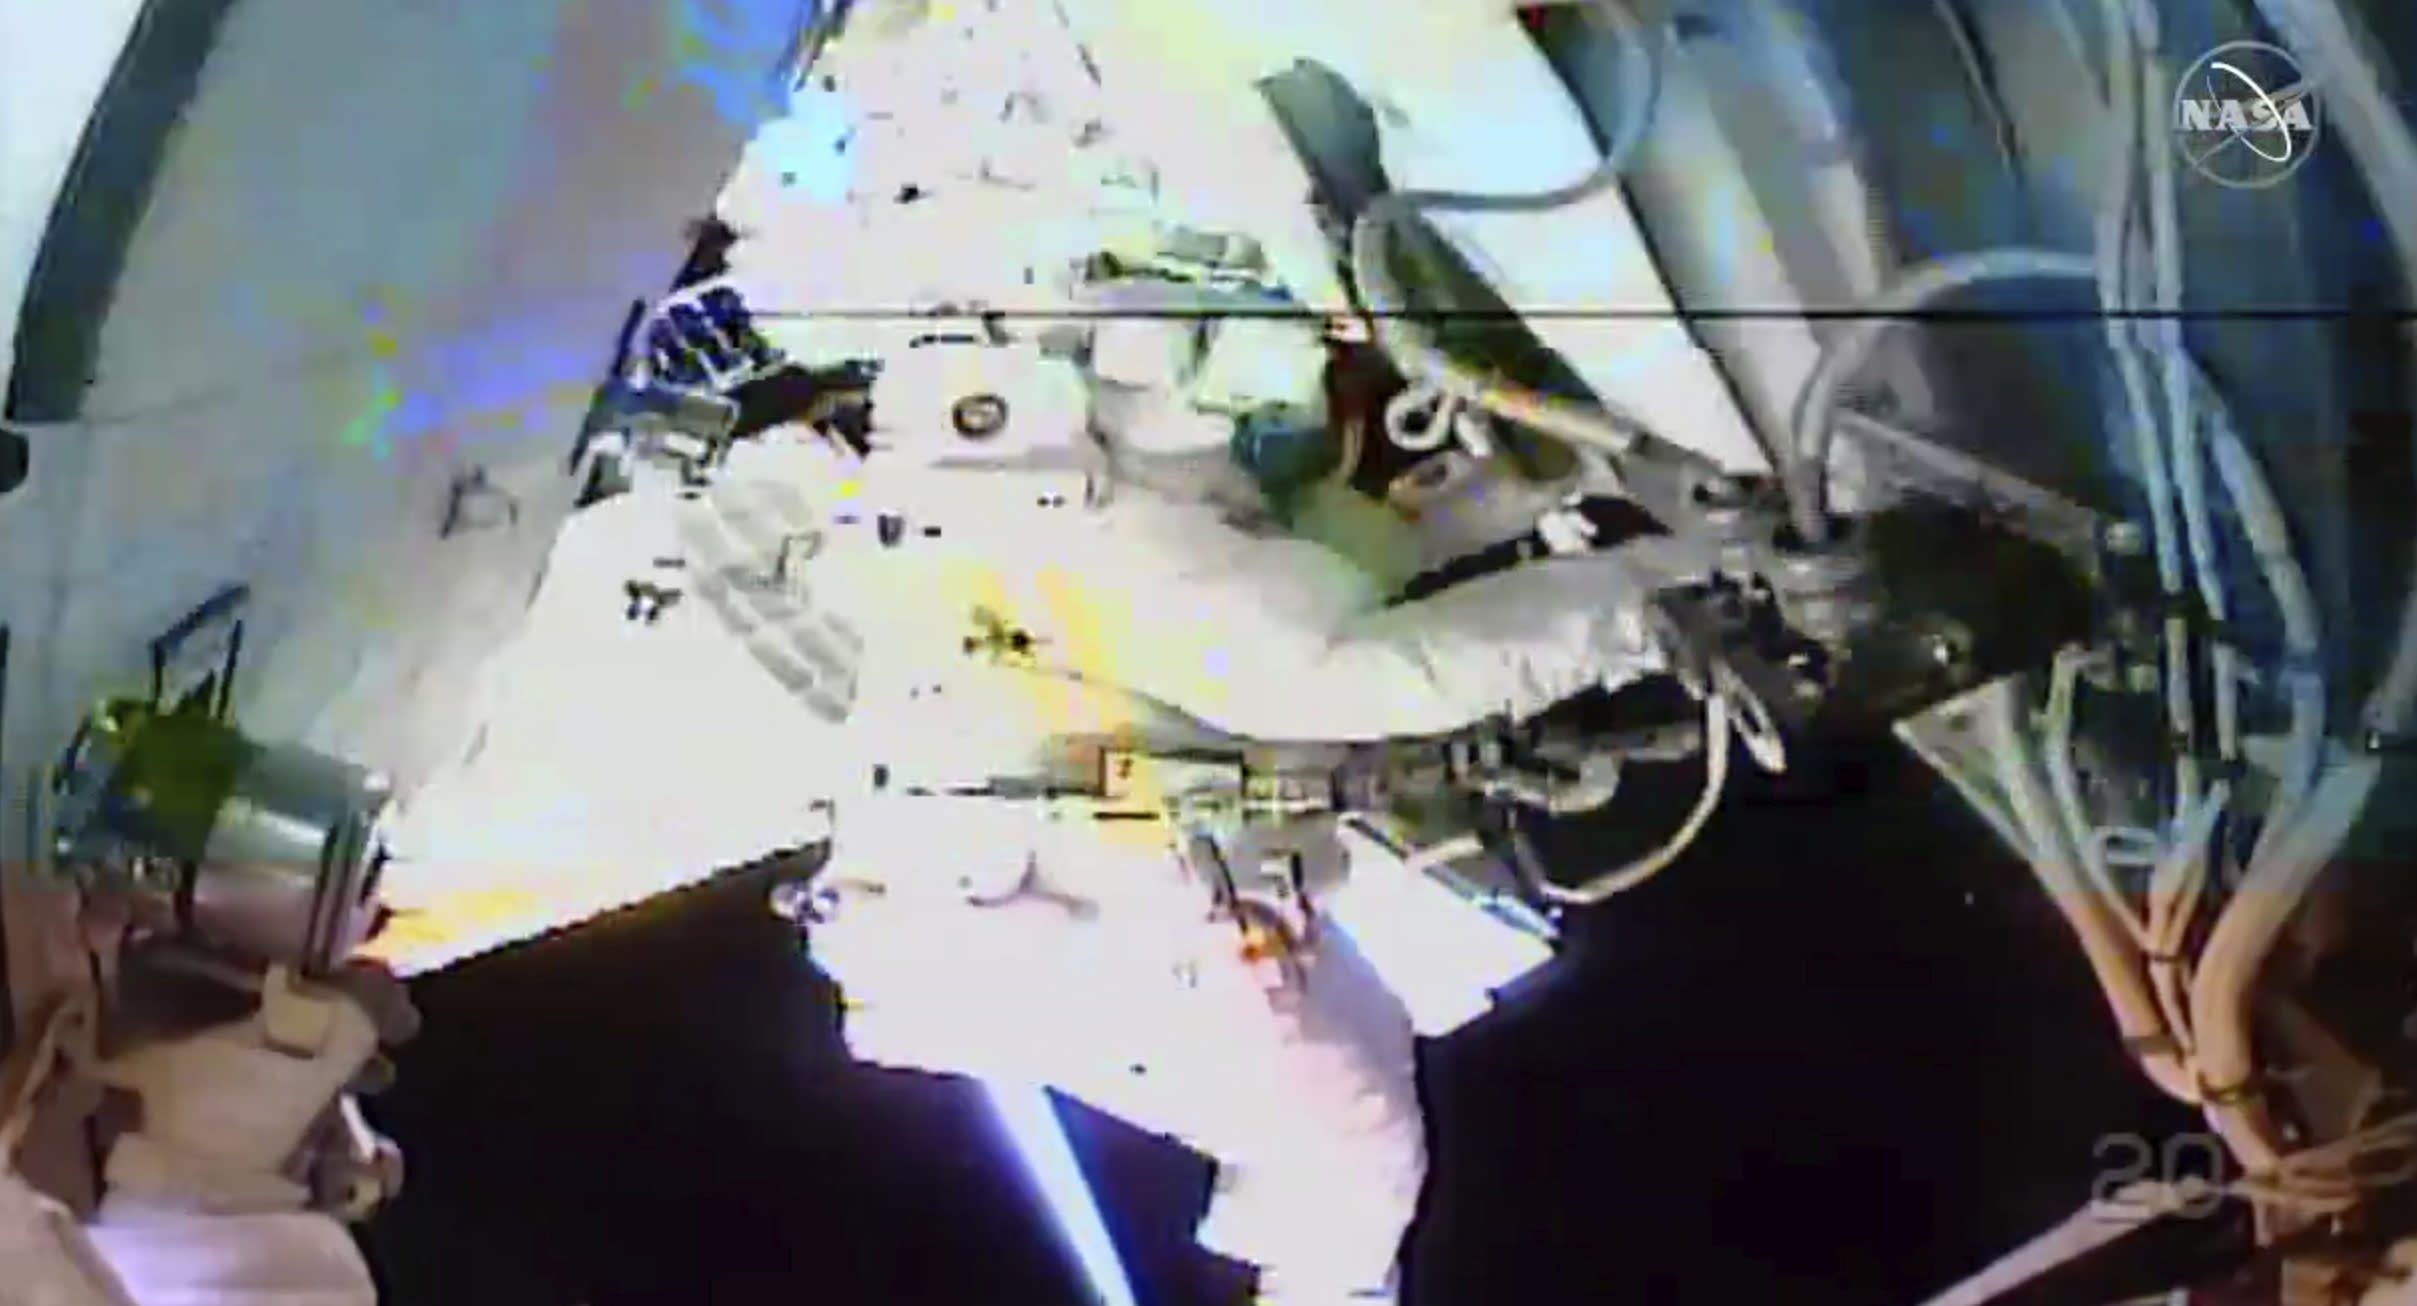 NASA astronauts conduct their third spacewalk in 3 weeks